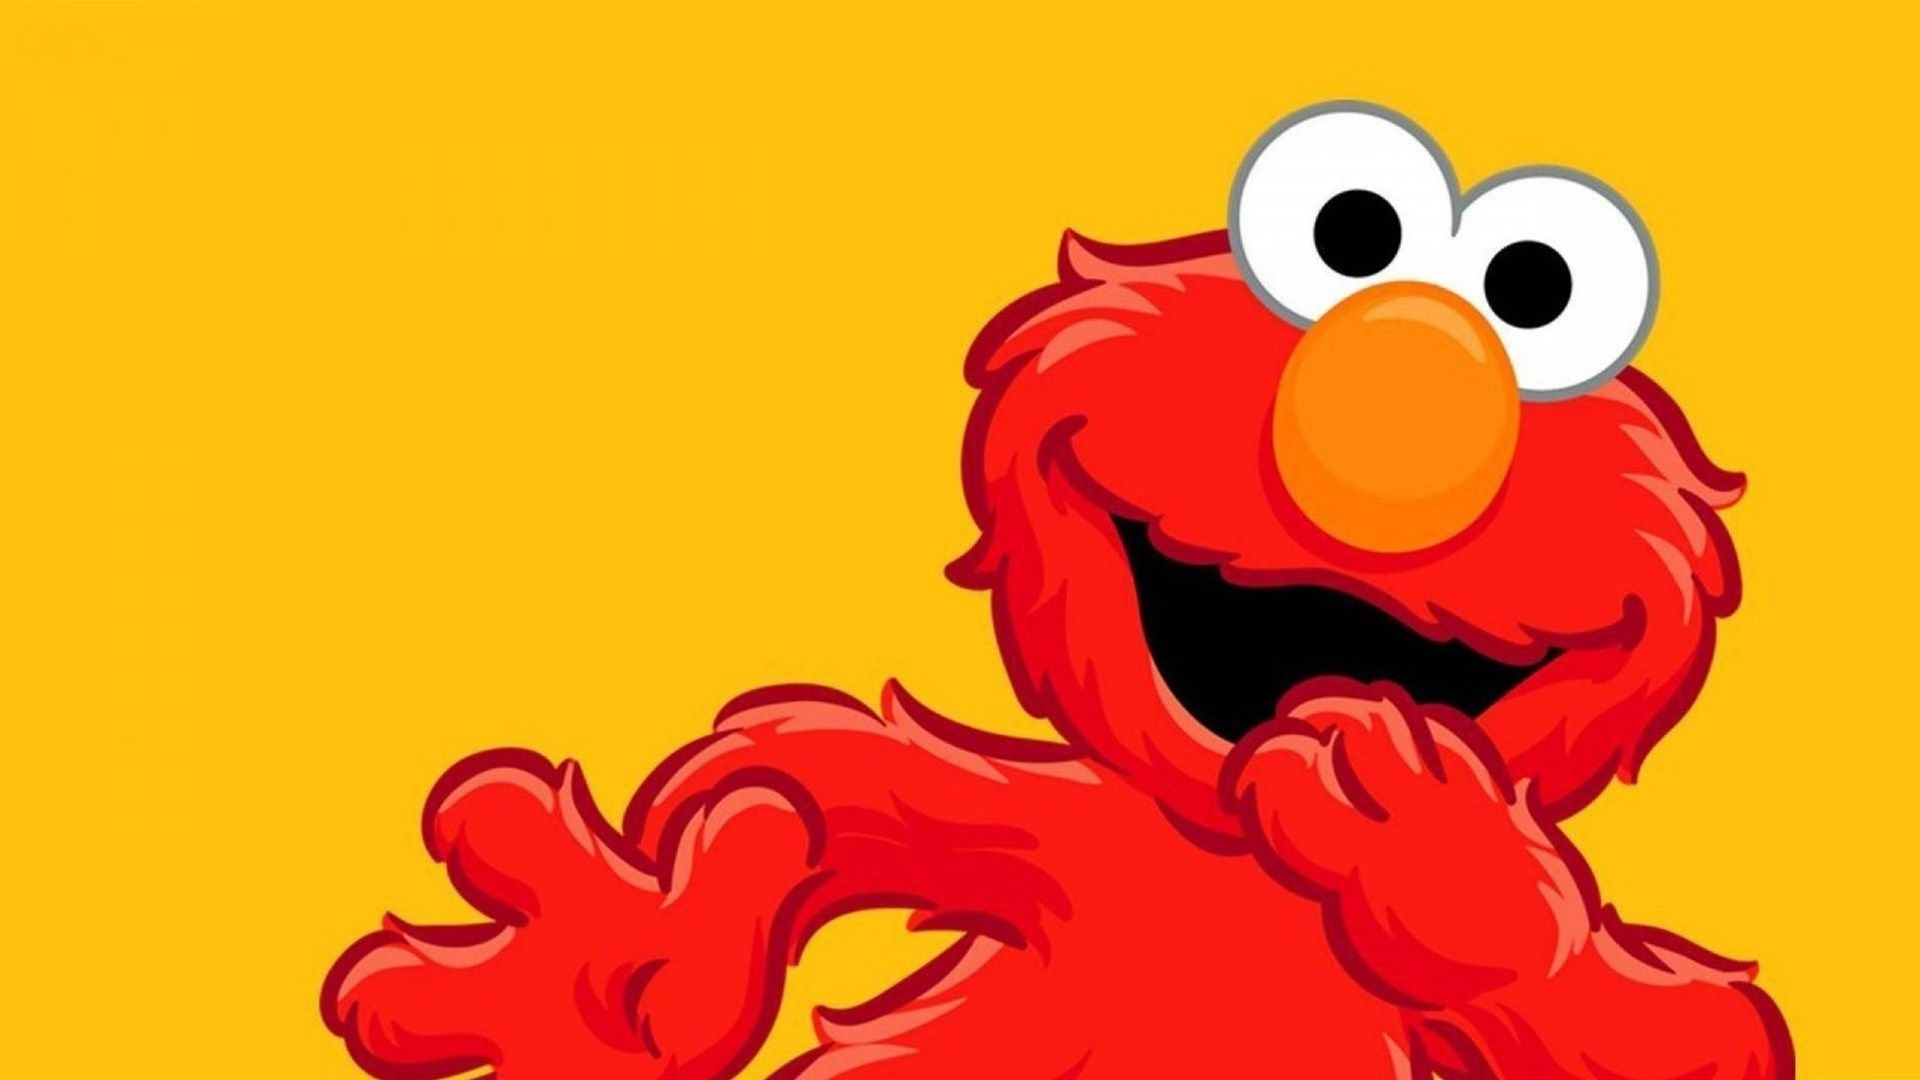 Res: 1920x1080, Sesame Street Wallpaper Best Of Download Cookie Monster Wallpapers to Your  Cell Phone Blue